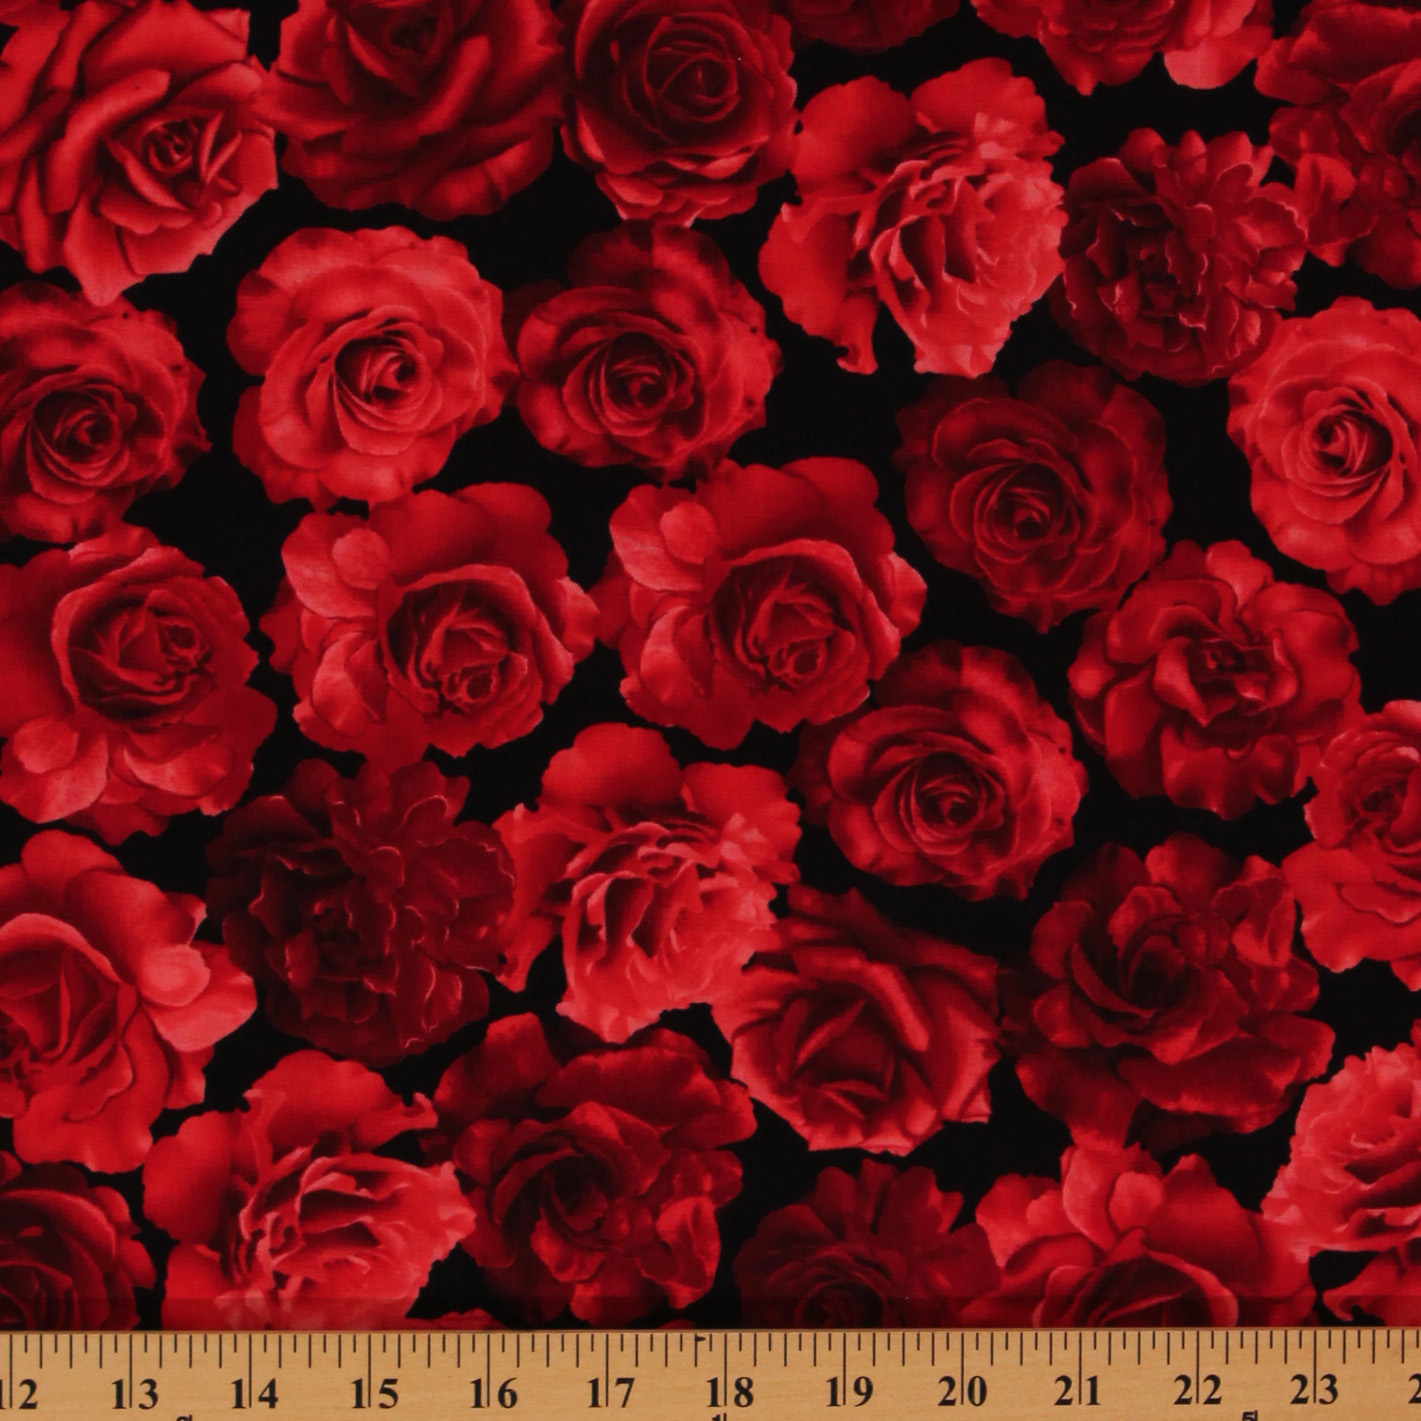 Black Velvet Damask Wallpaper Cotton Red Roses Blooms Flowers Black Valentine S Floral